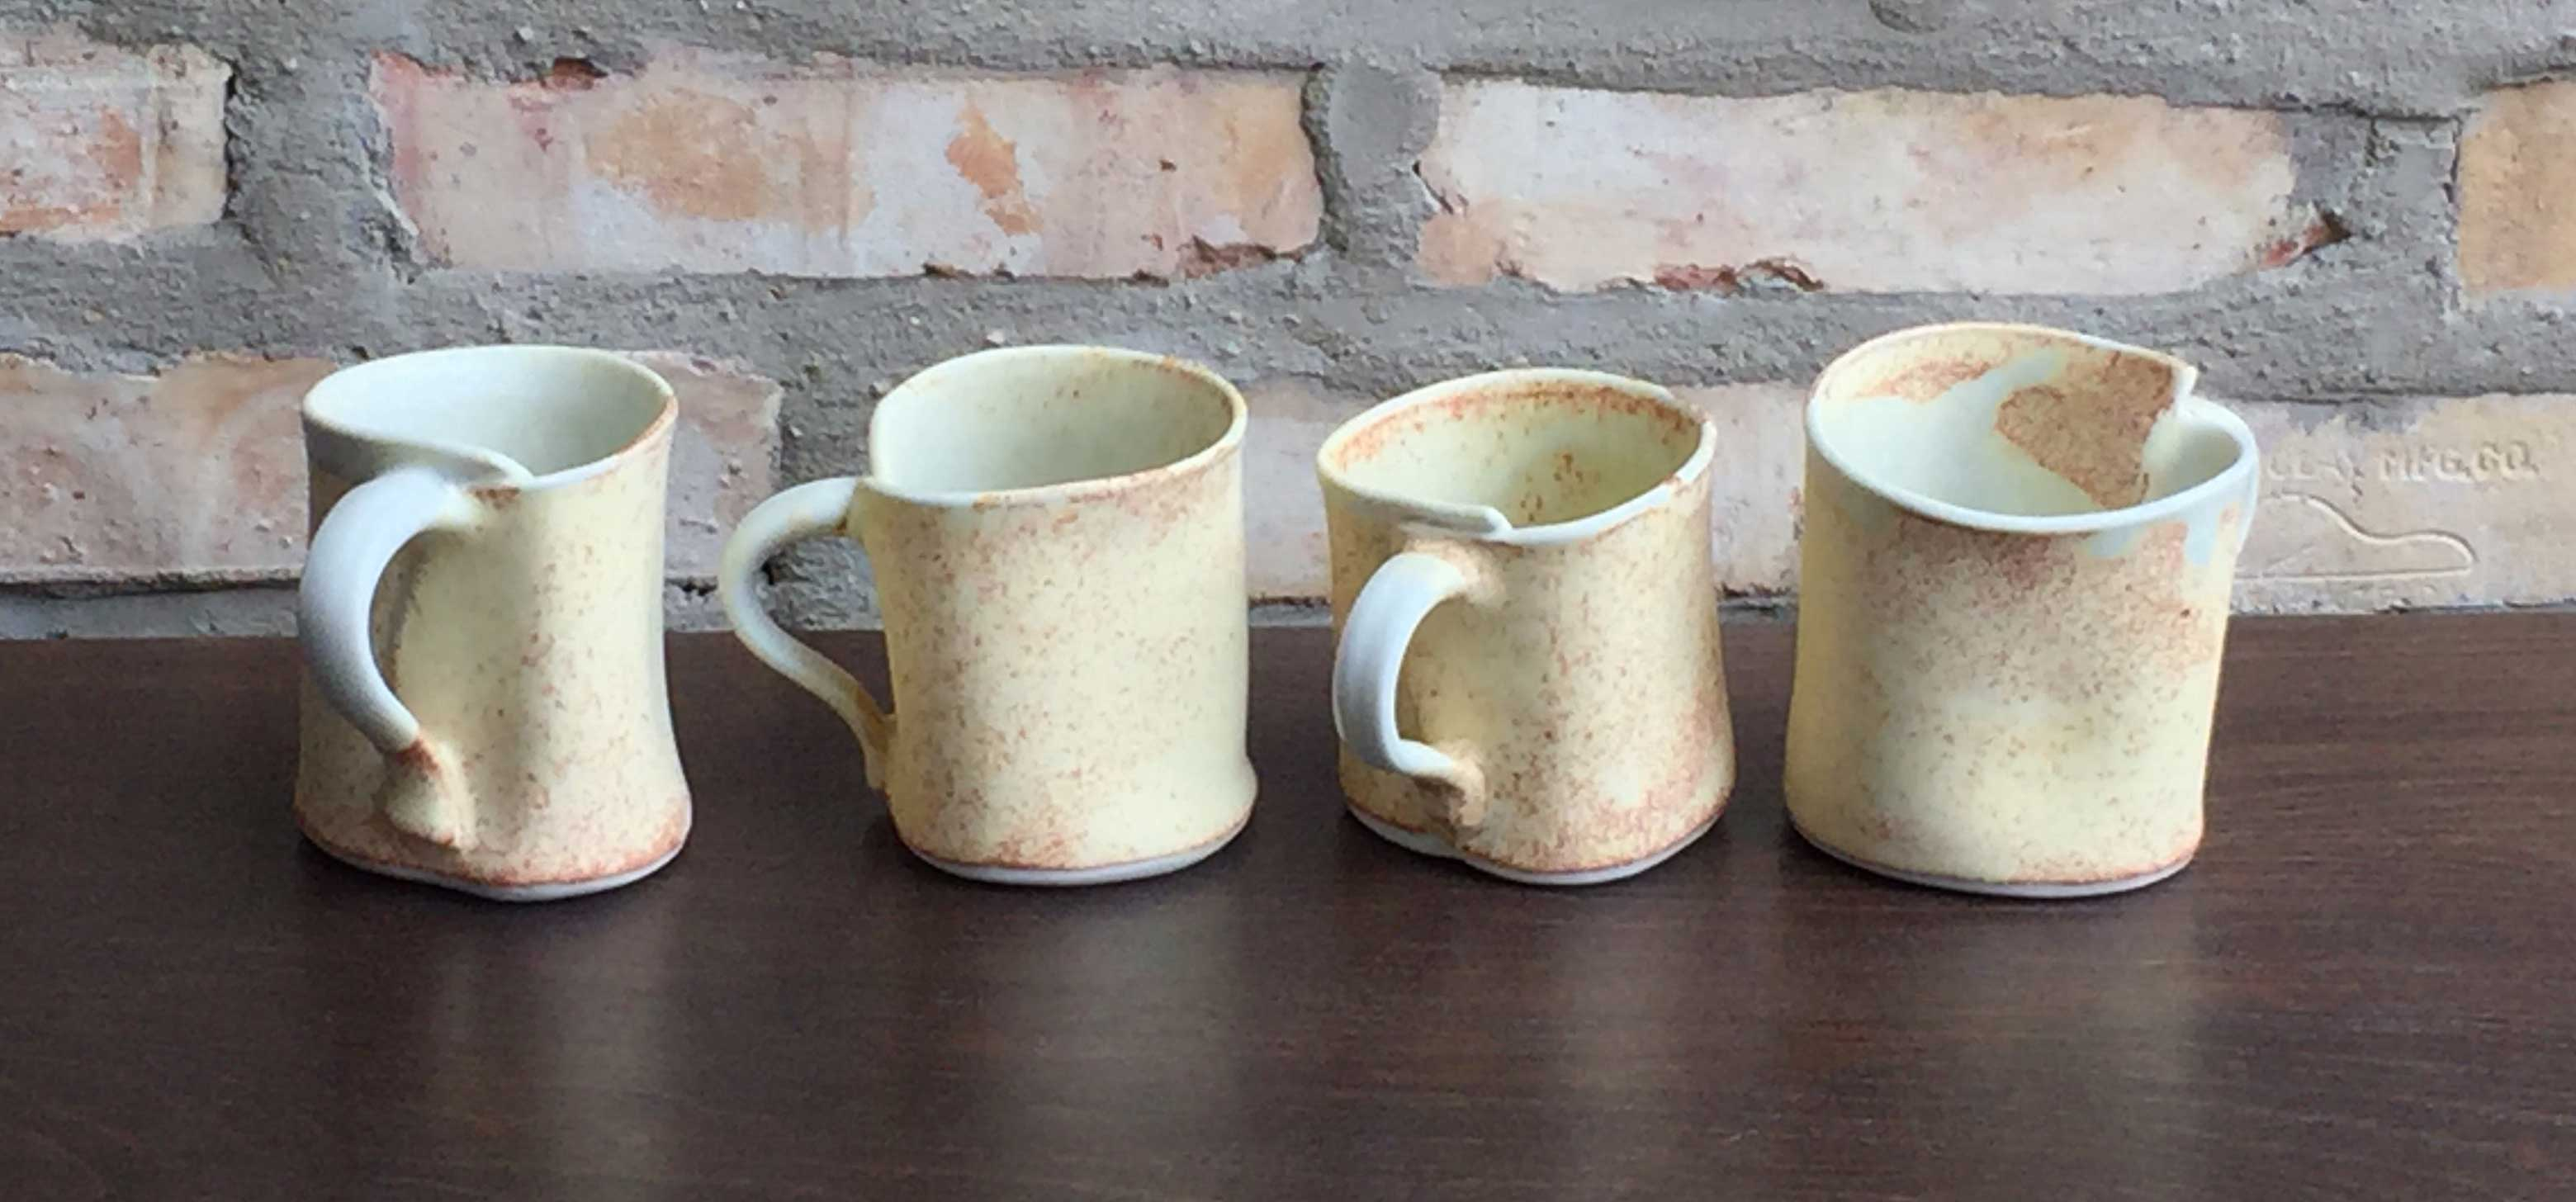 Clay: Handbuilt Mugs